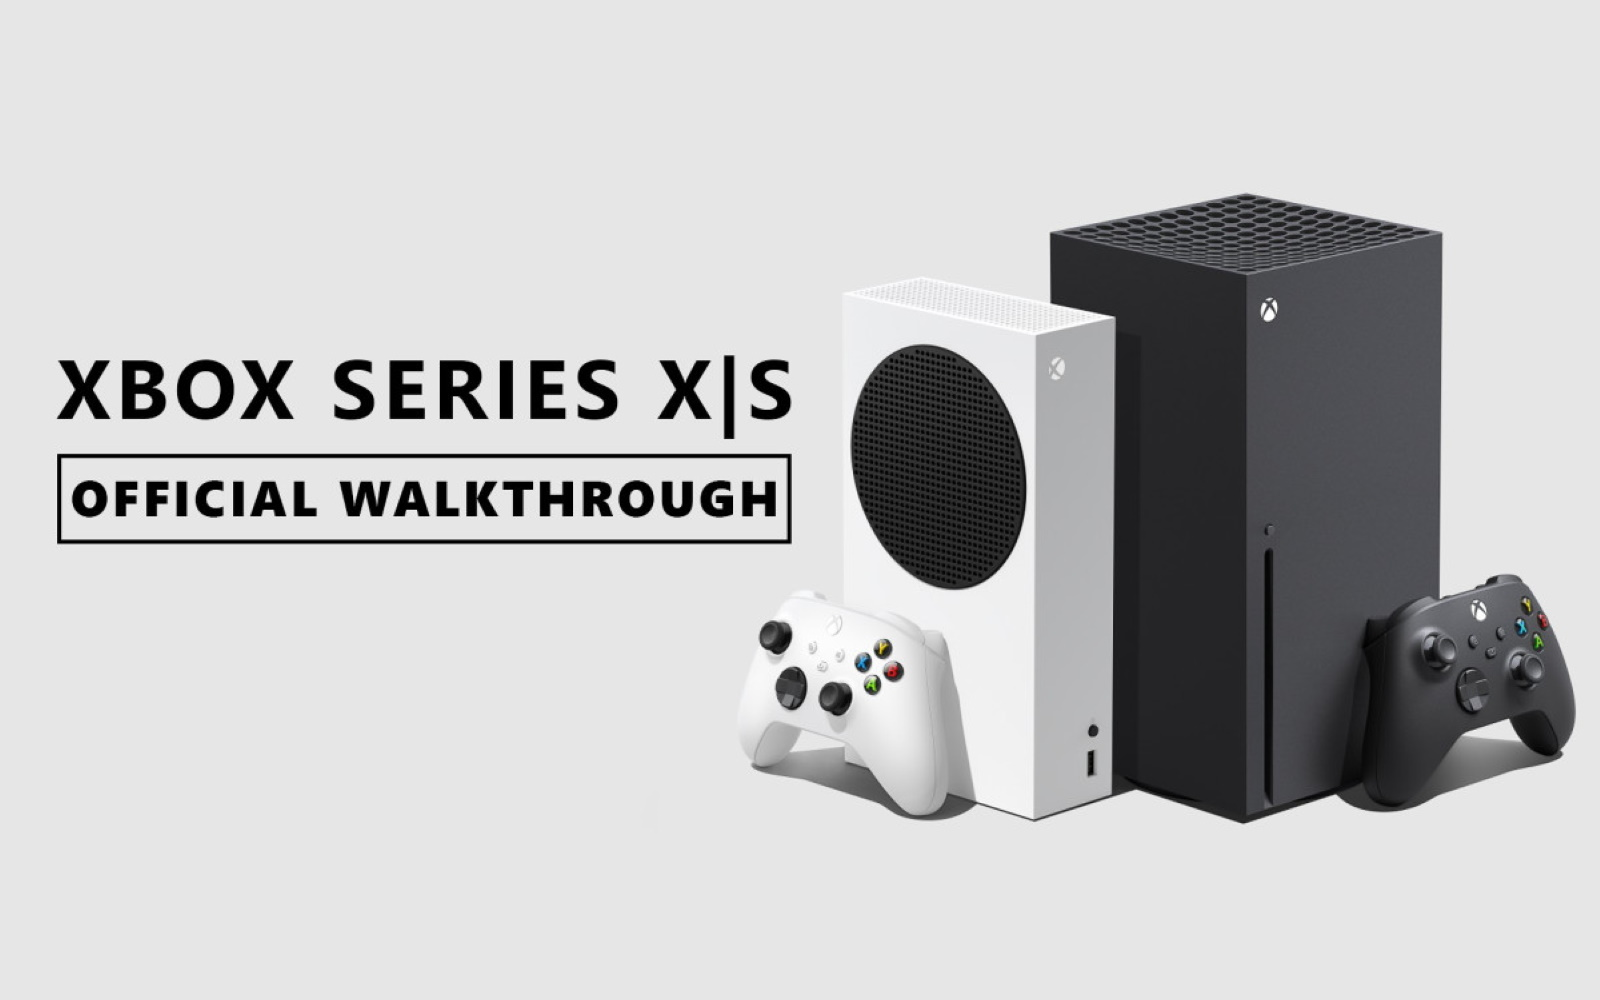 Xbox Series X|S Gets Full Walkthrough Video